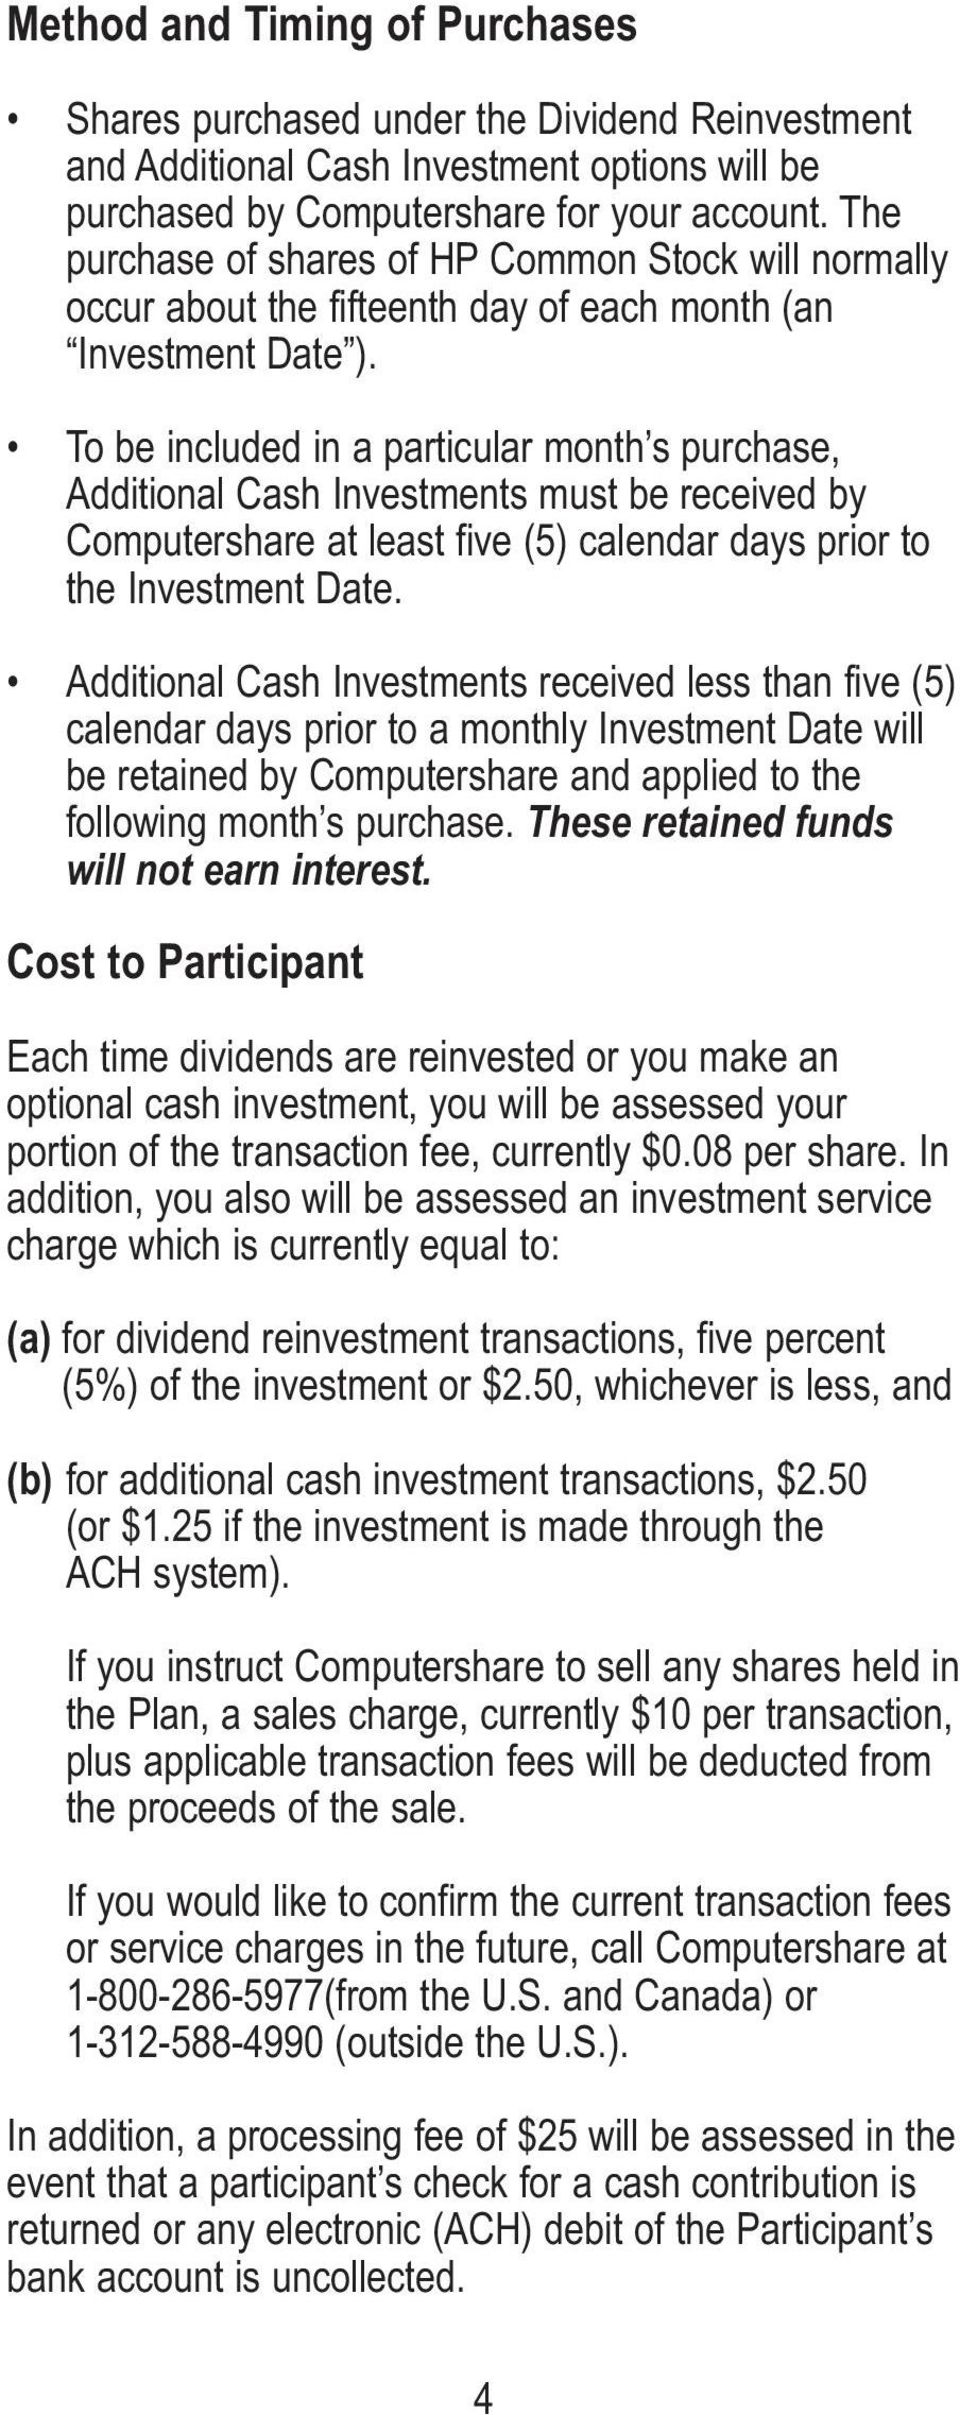 To be included in a particular month s purchase, Additional Cash Investments must be received by Computershare at least five (5) calendar days prior to the Investment Date.